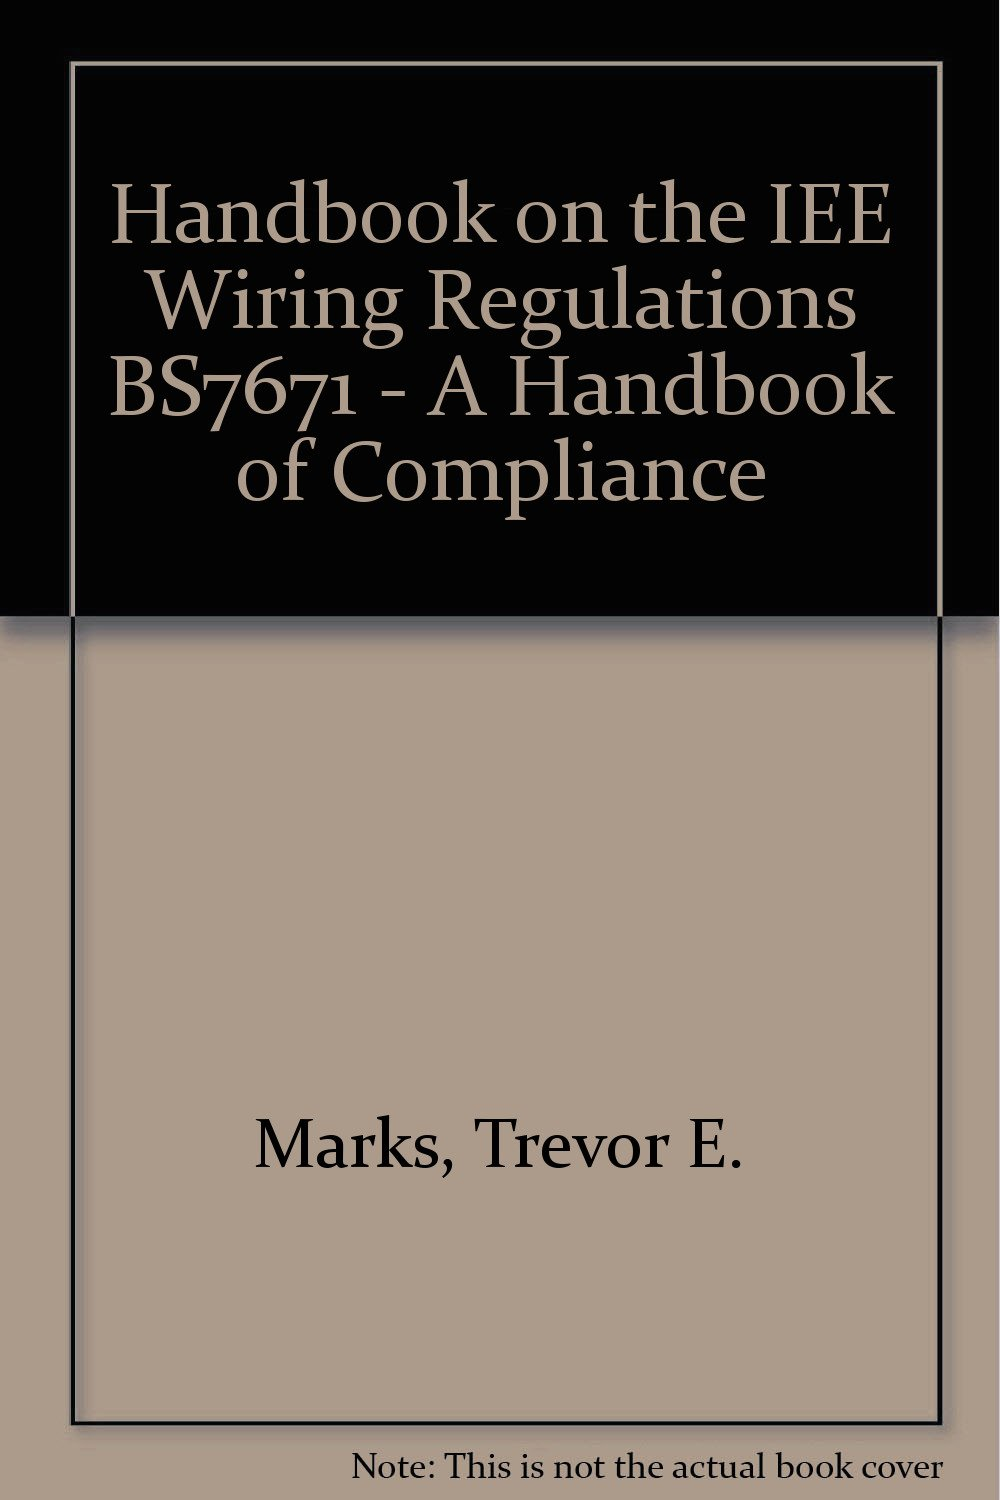 Buy Handbook On The Iee Wiring Regulations Bs7671 A Of Iet Regs Books Compliance Book Online At Low Prices In India